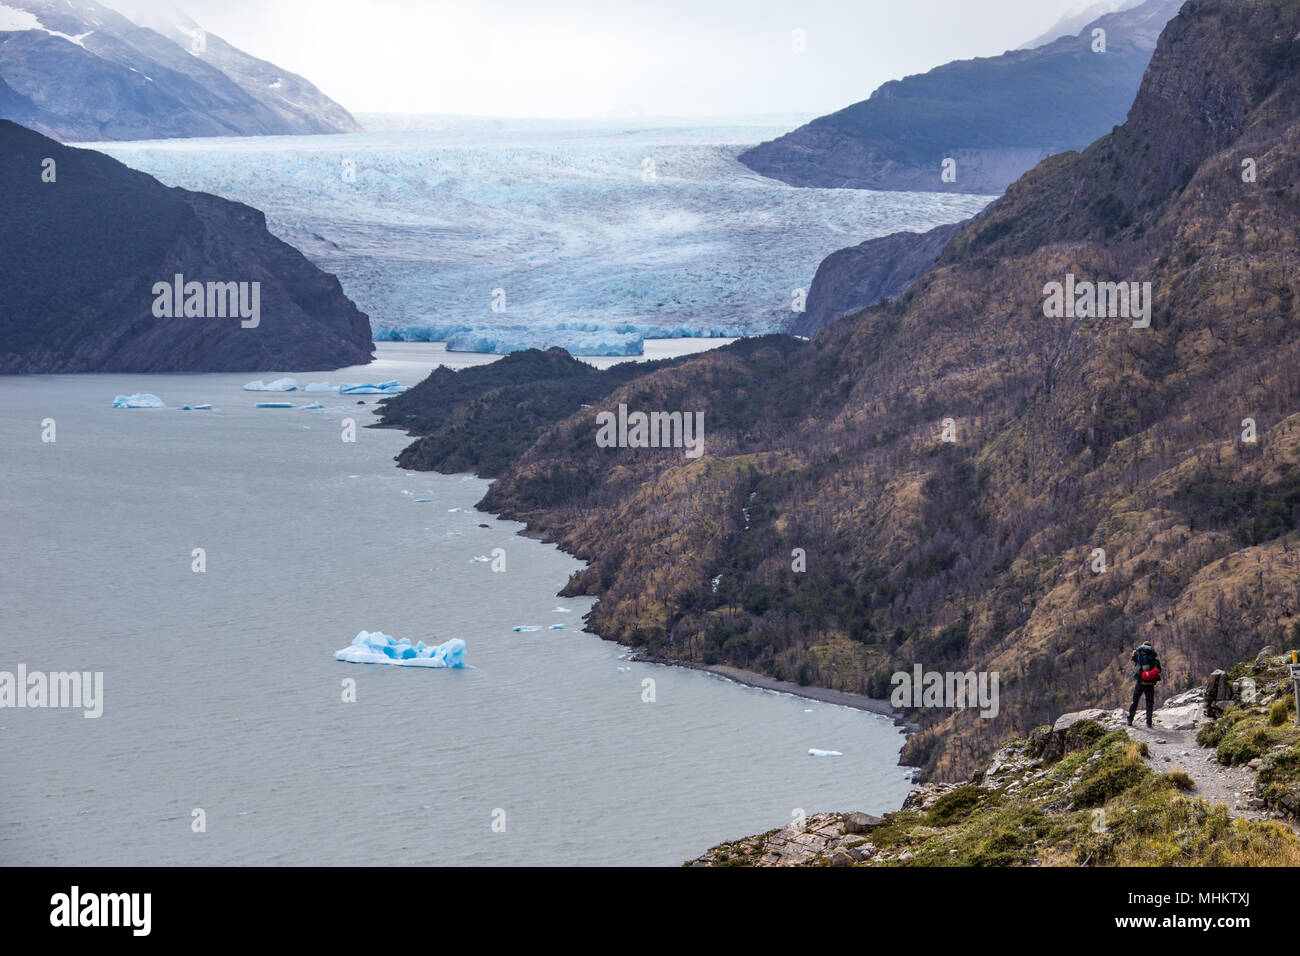 Hiker pauses for the view of Glaciar Grey, Torres del Paine National Park, Patagonia, Chile - Stock Image